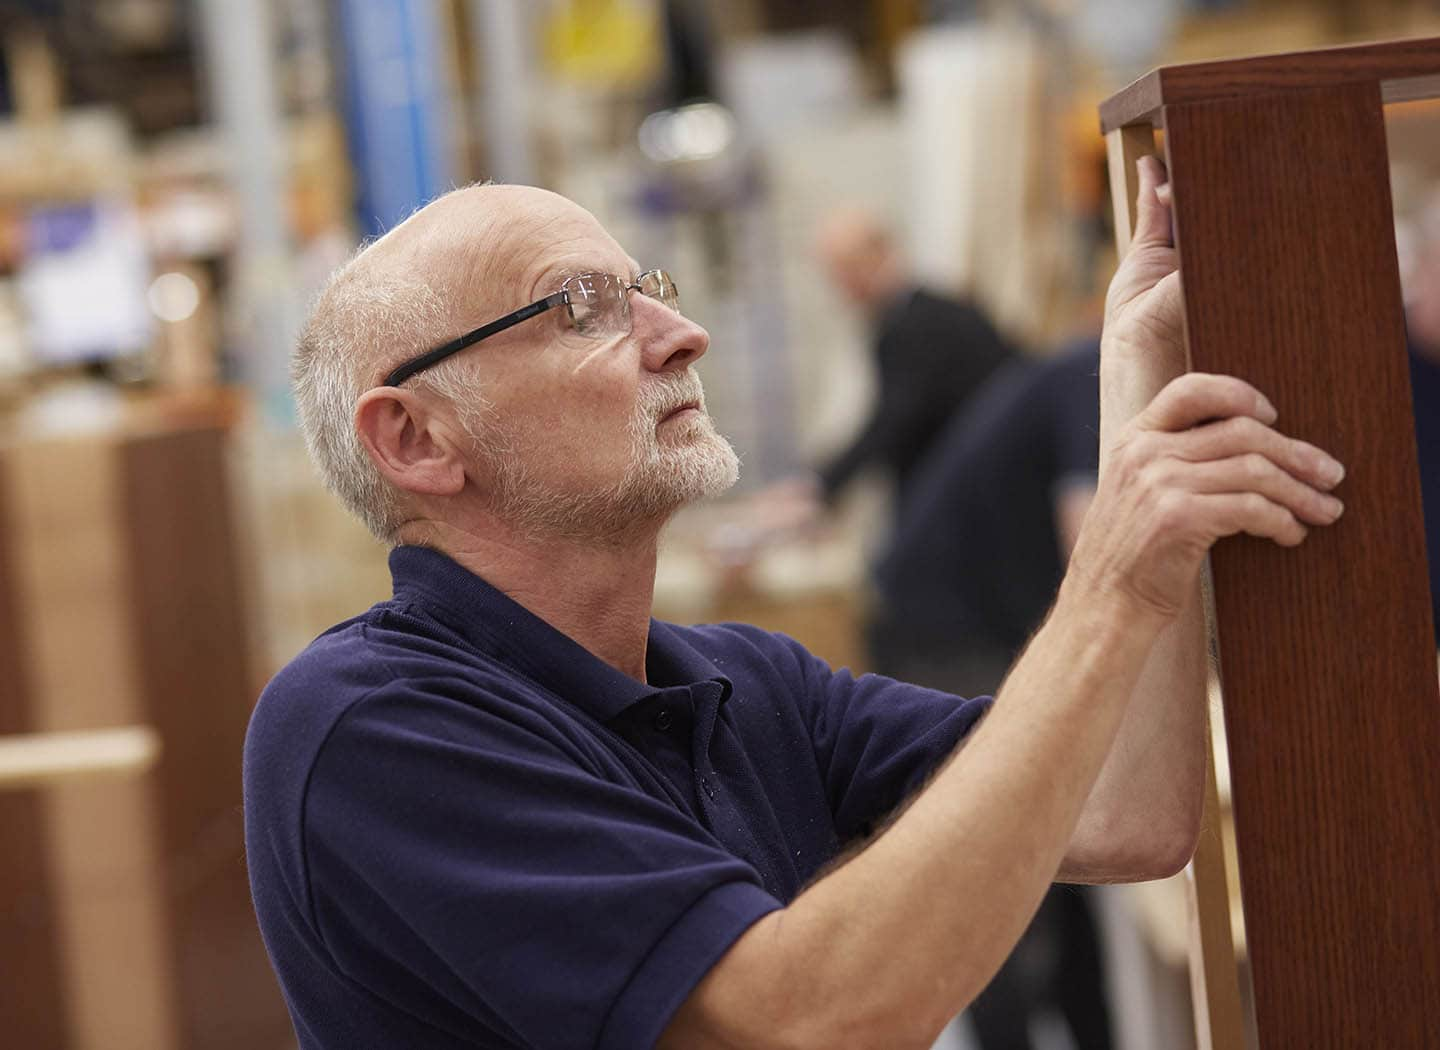 Strachan craftsman making bespoke furniture